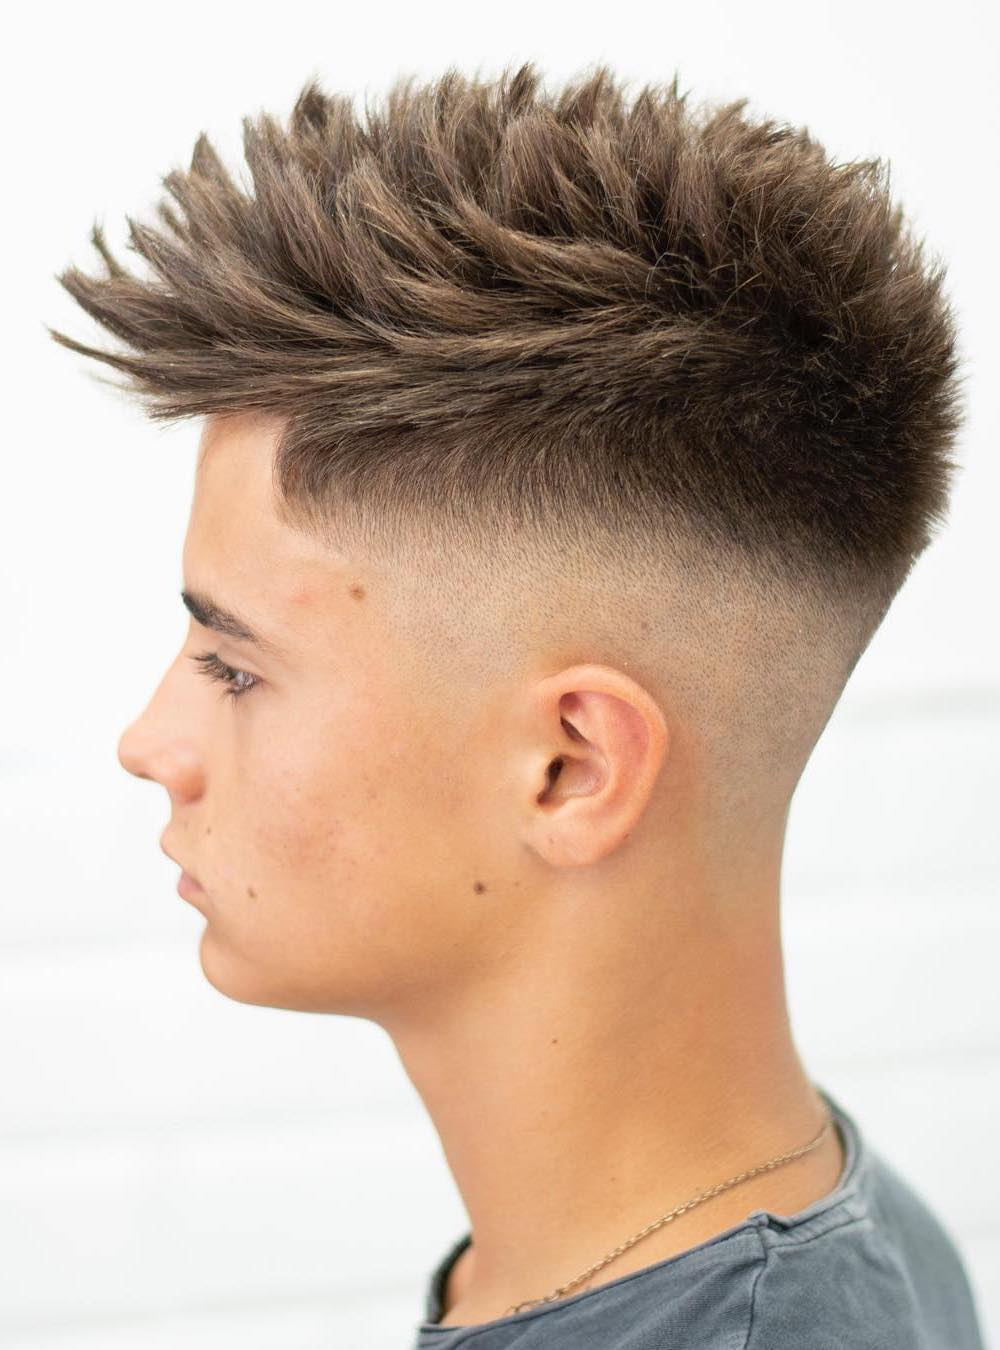 20 Exquisite Spiky Hairstyles Leading Ideas For 2020